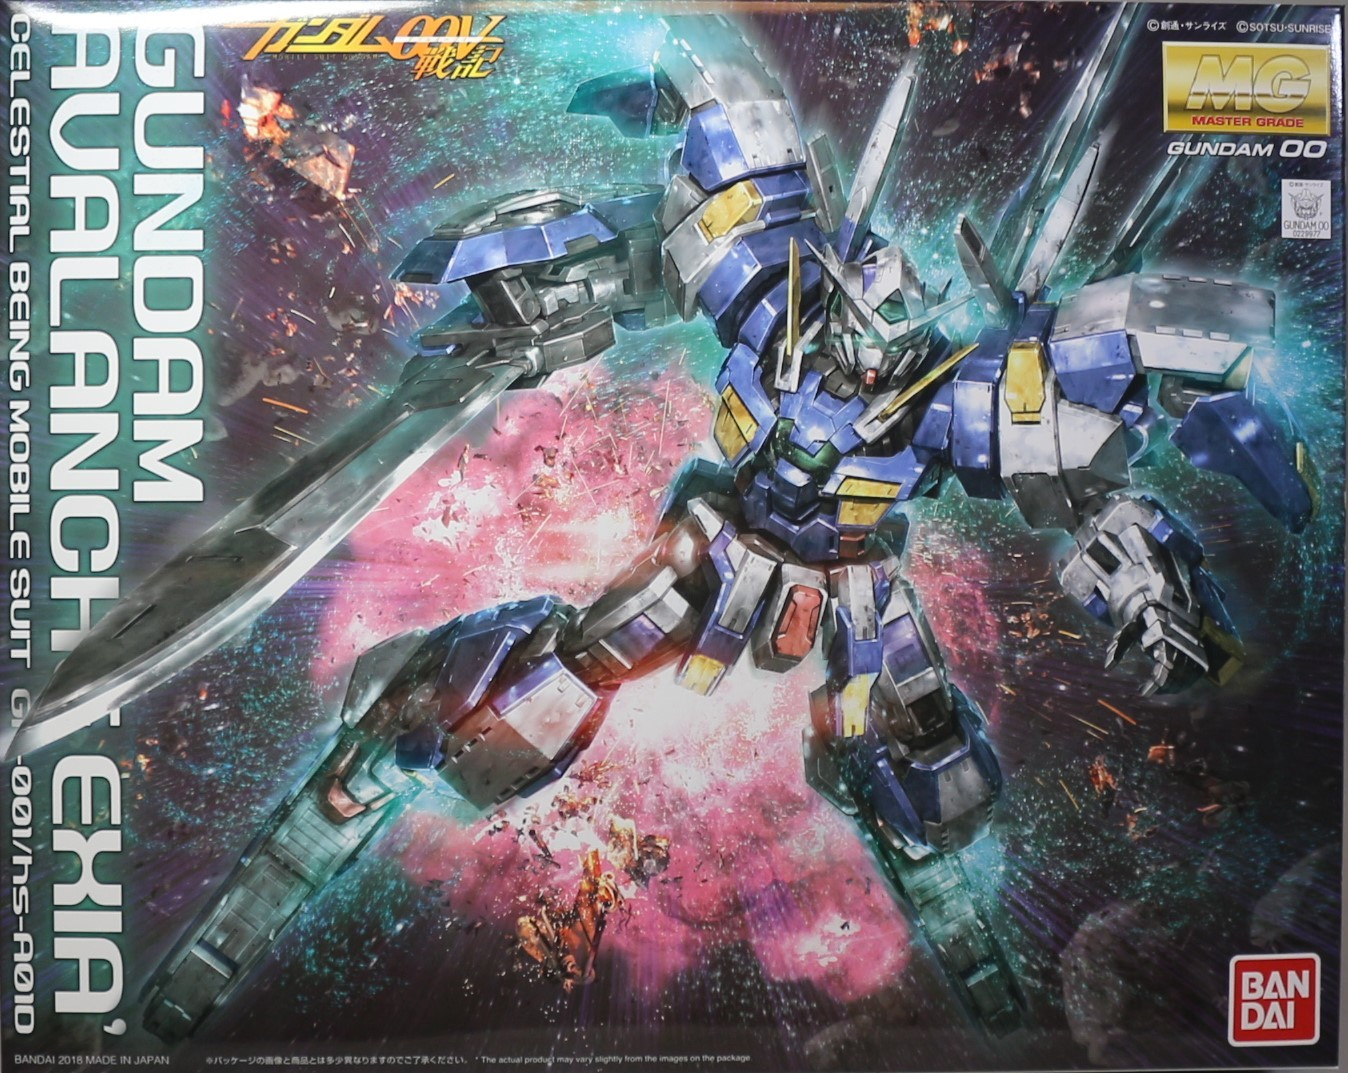 MG-AVALANCHE_EXIA_D-box.jpg